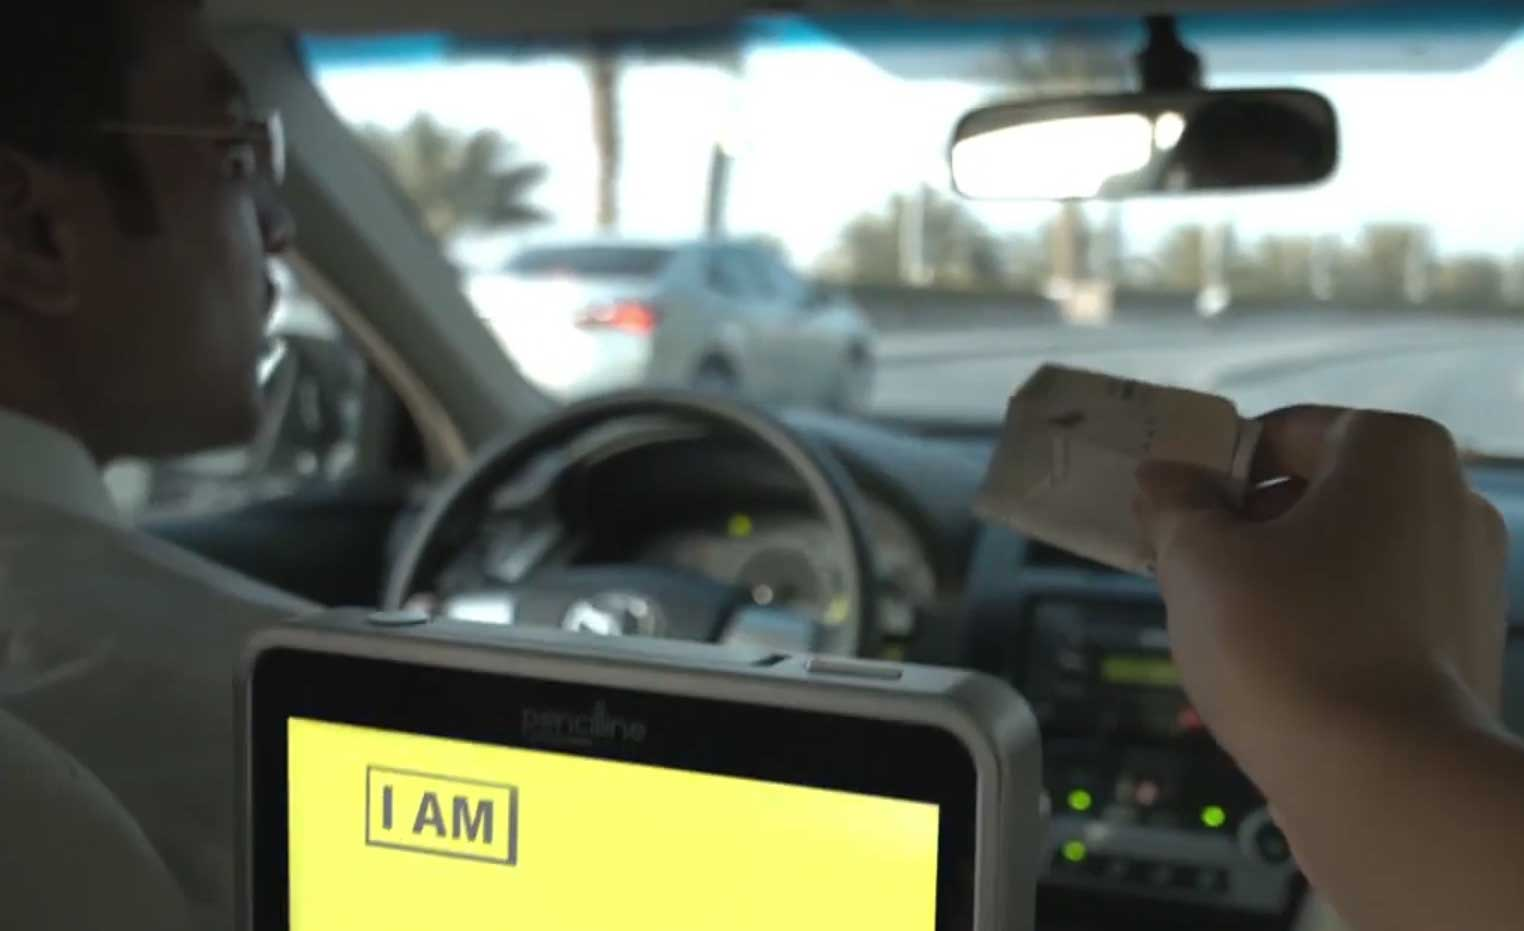 Digital Signage Software for Taxi